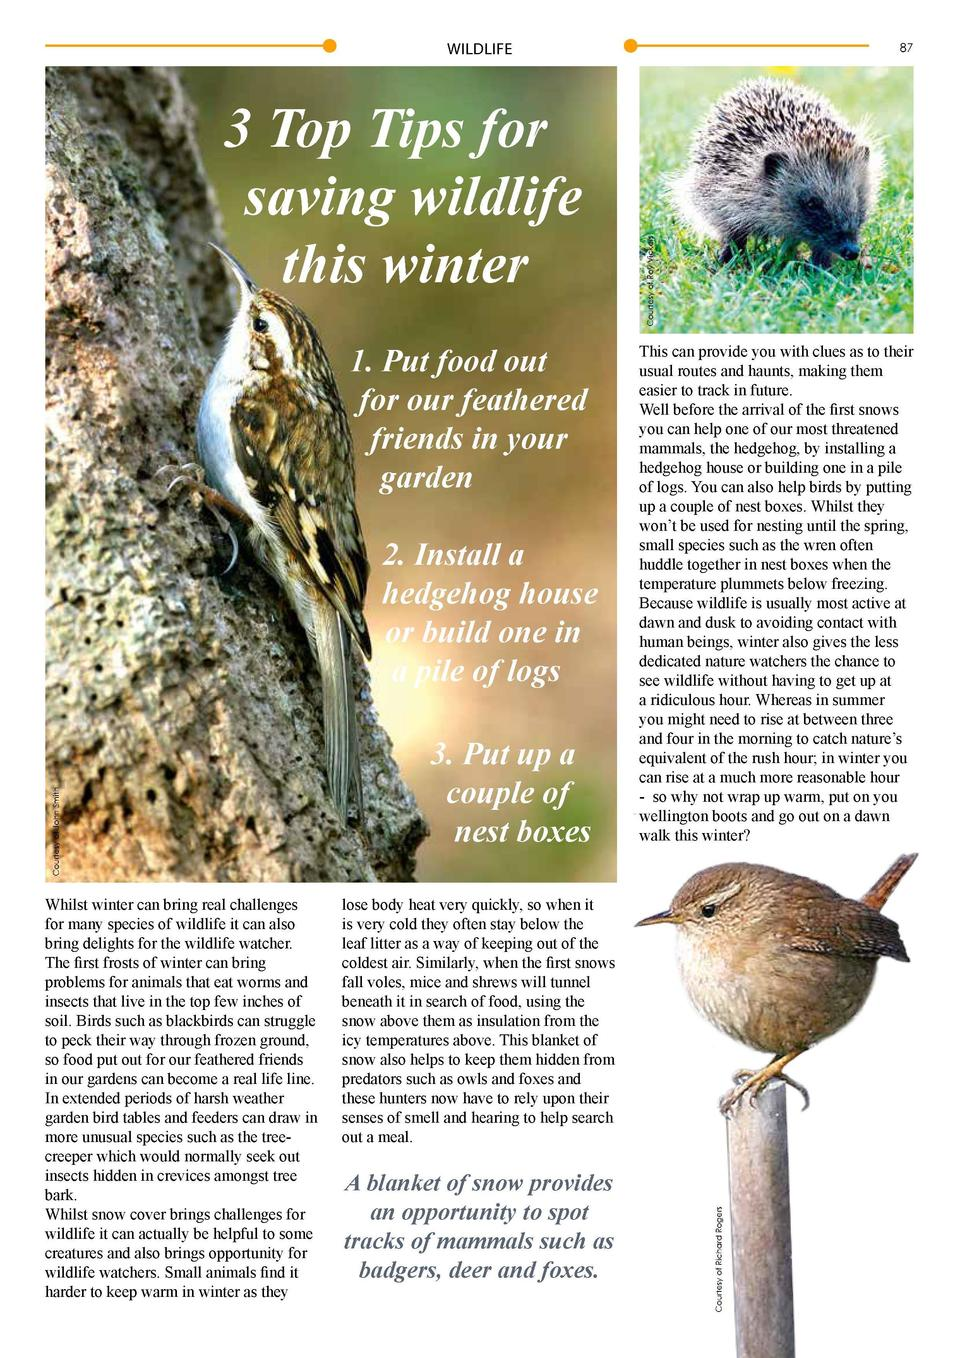 WILDLIFE  1. Put food out for our feathered friends in your garden  Courtesy of Darin Smith  Courtesy of John Smith  2. In...